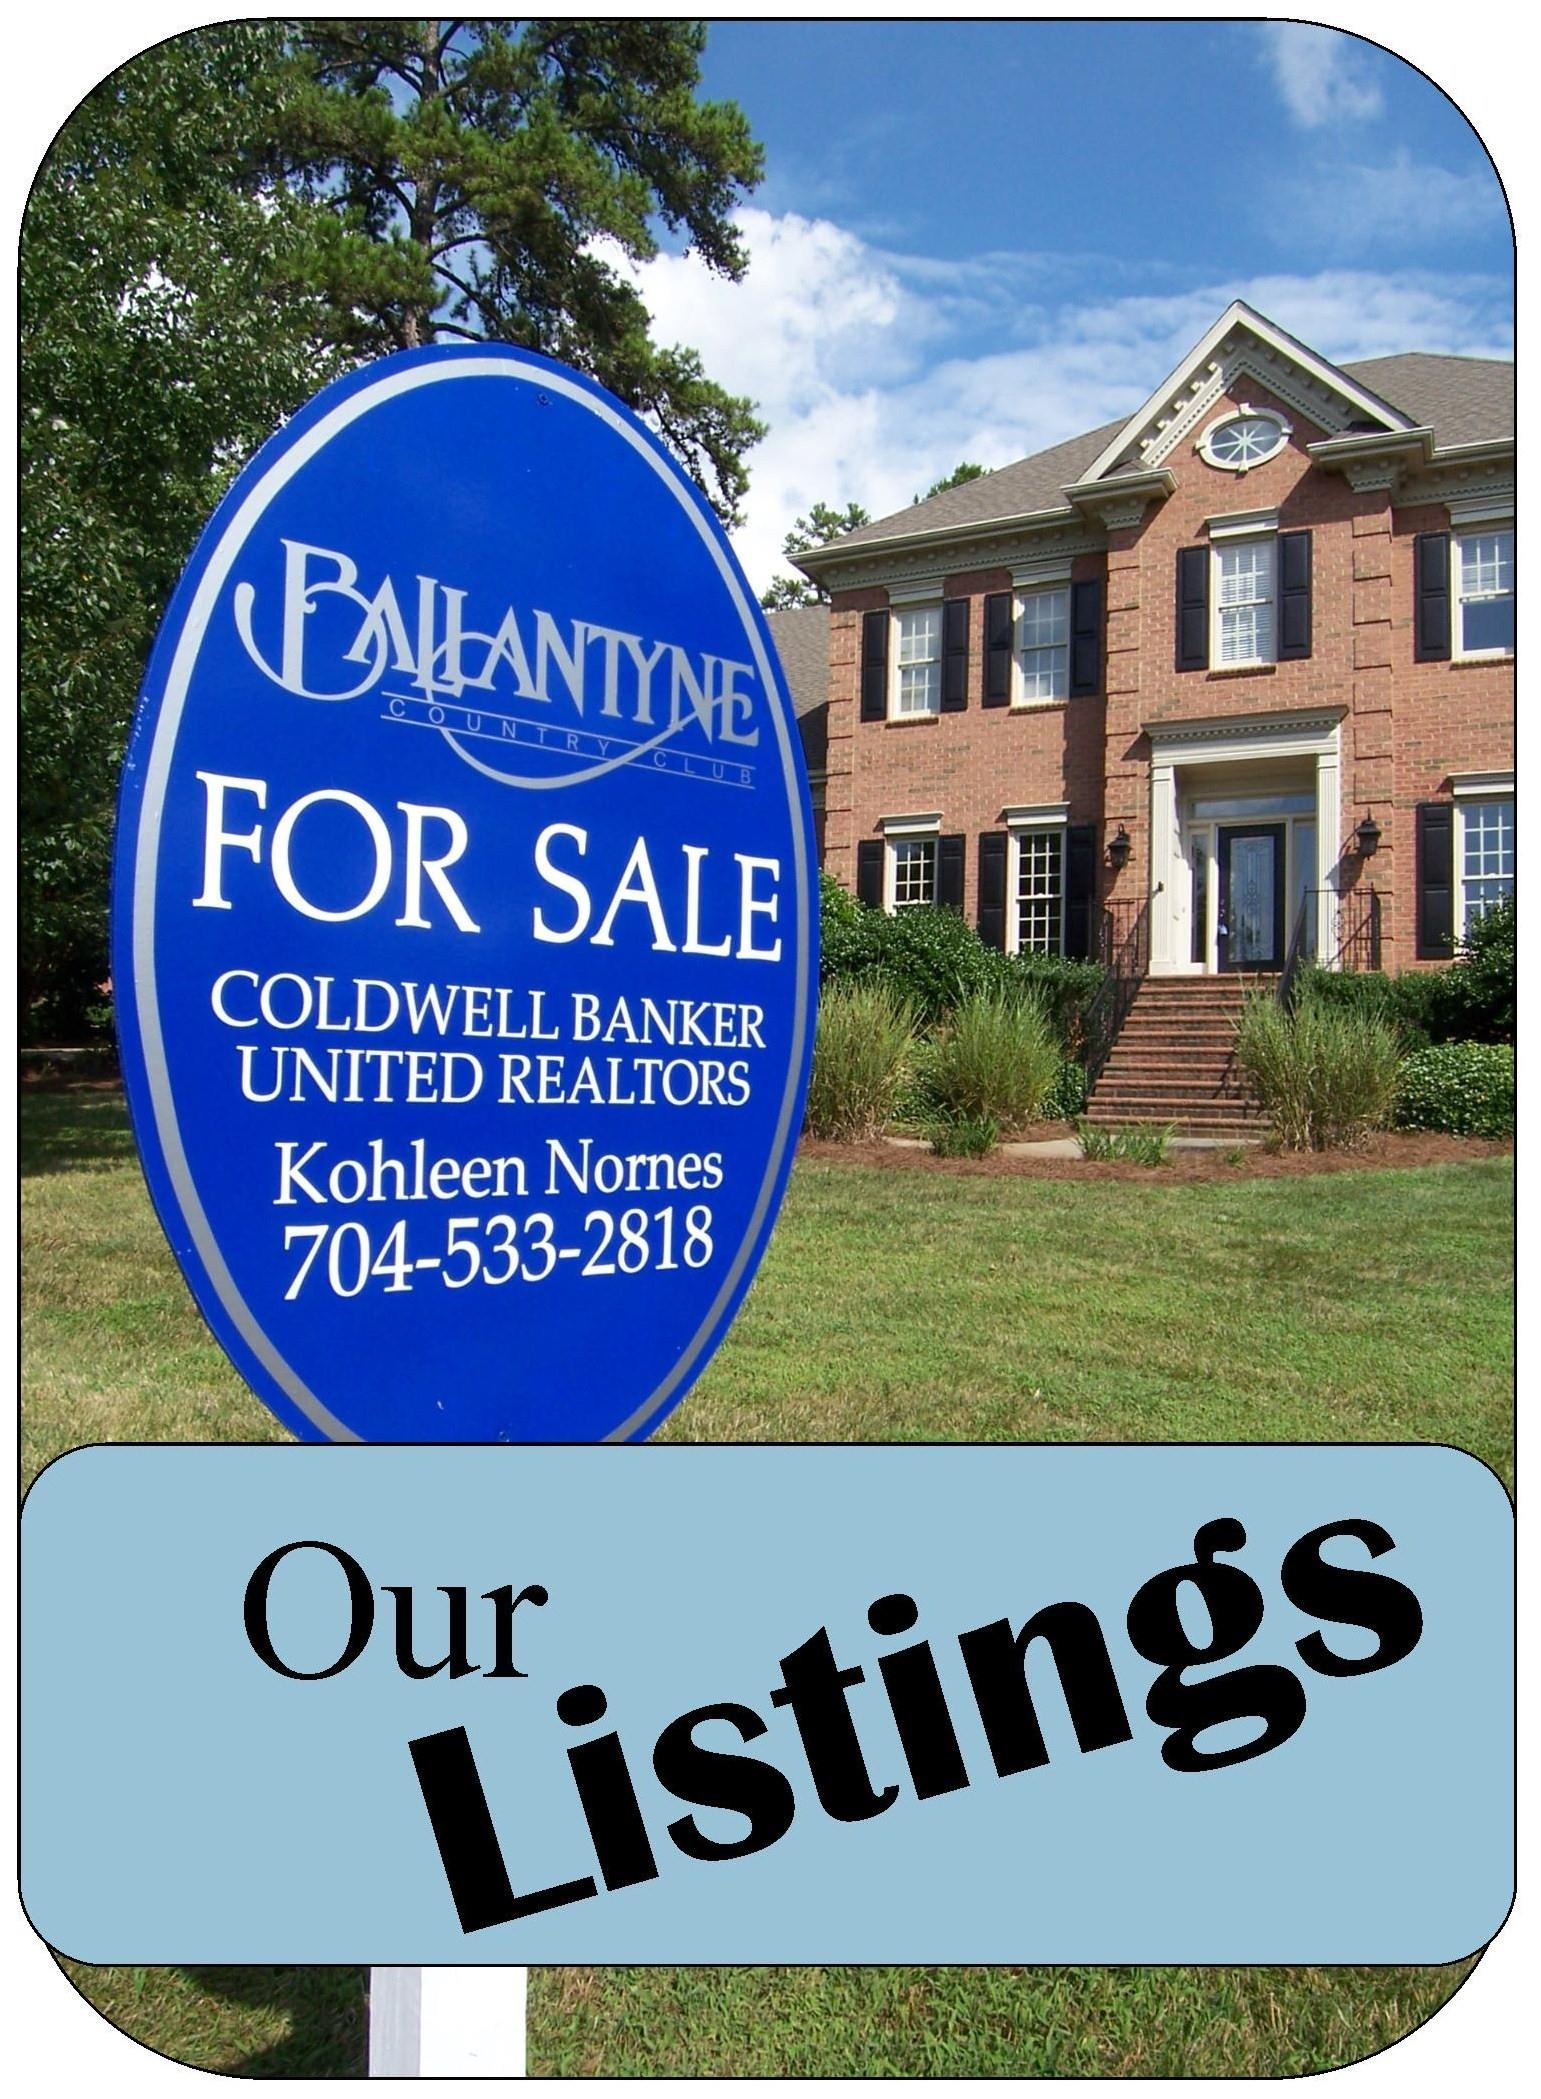 View our portfolio of homes!